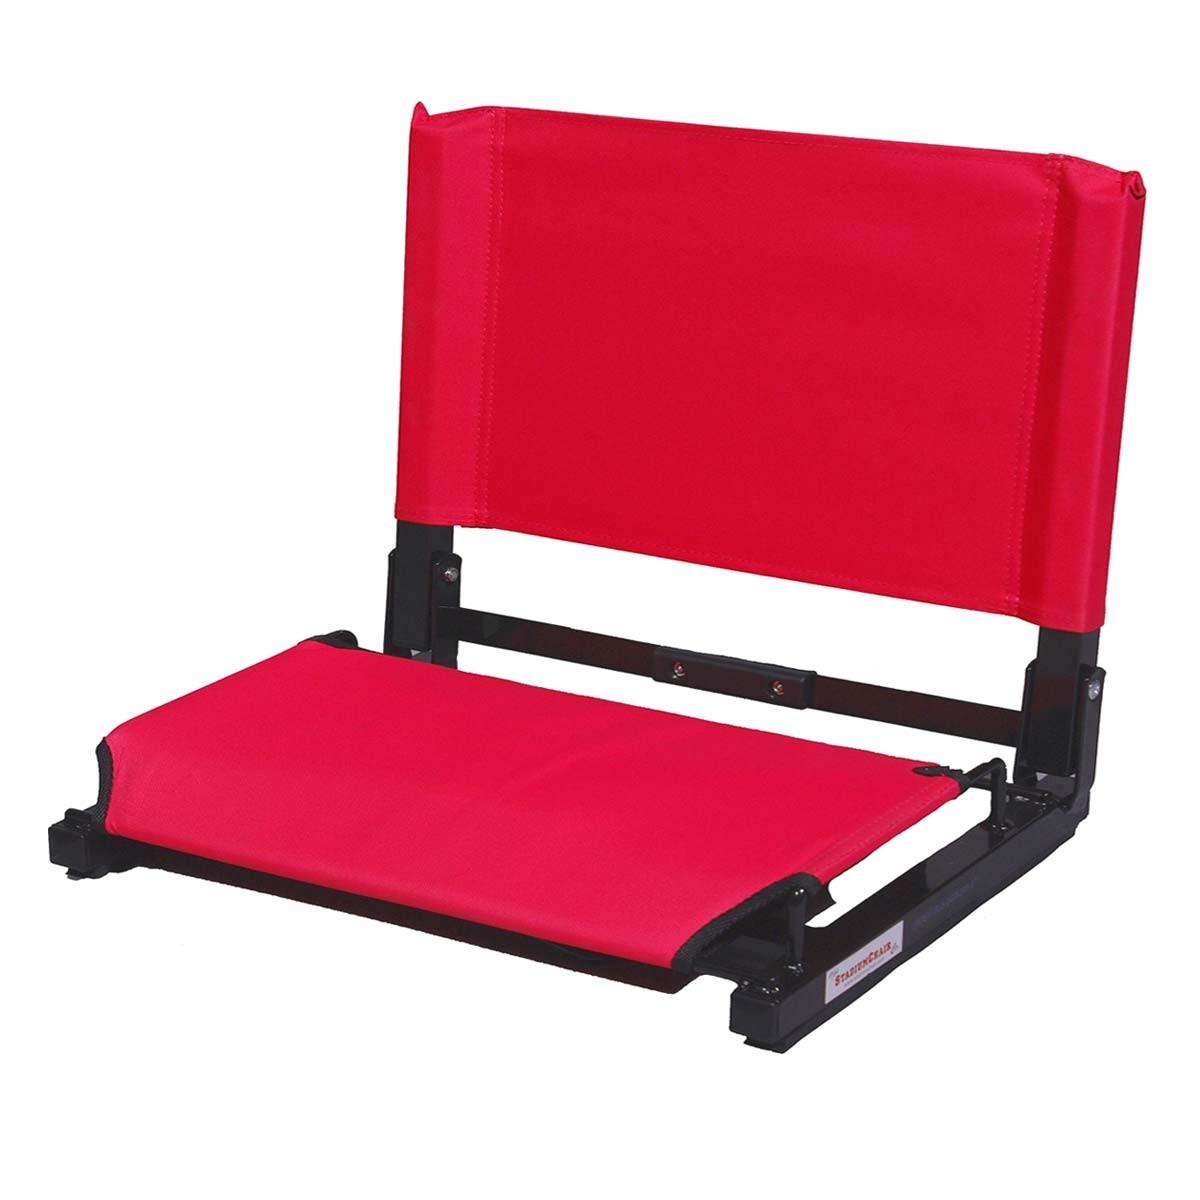 stadium chairs for bleachers with arms shower chair or stool seat back anthem sports bleacher sc2 standard model